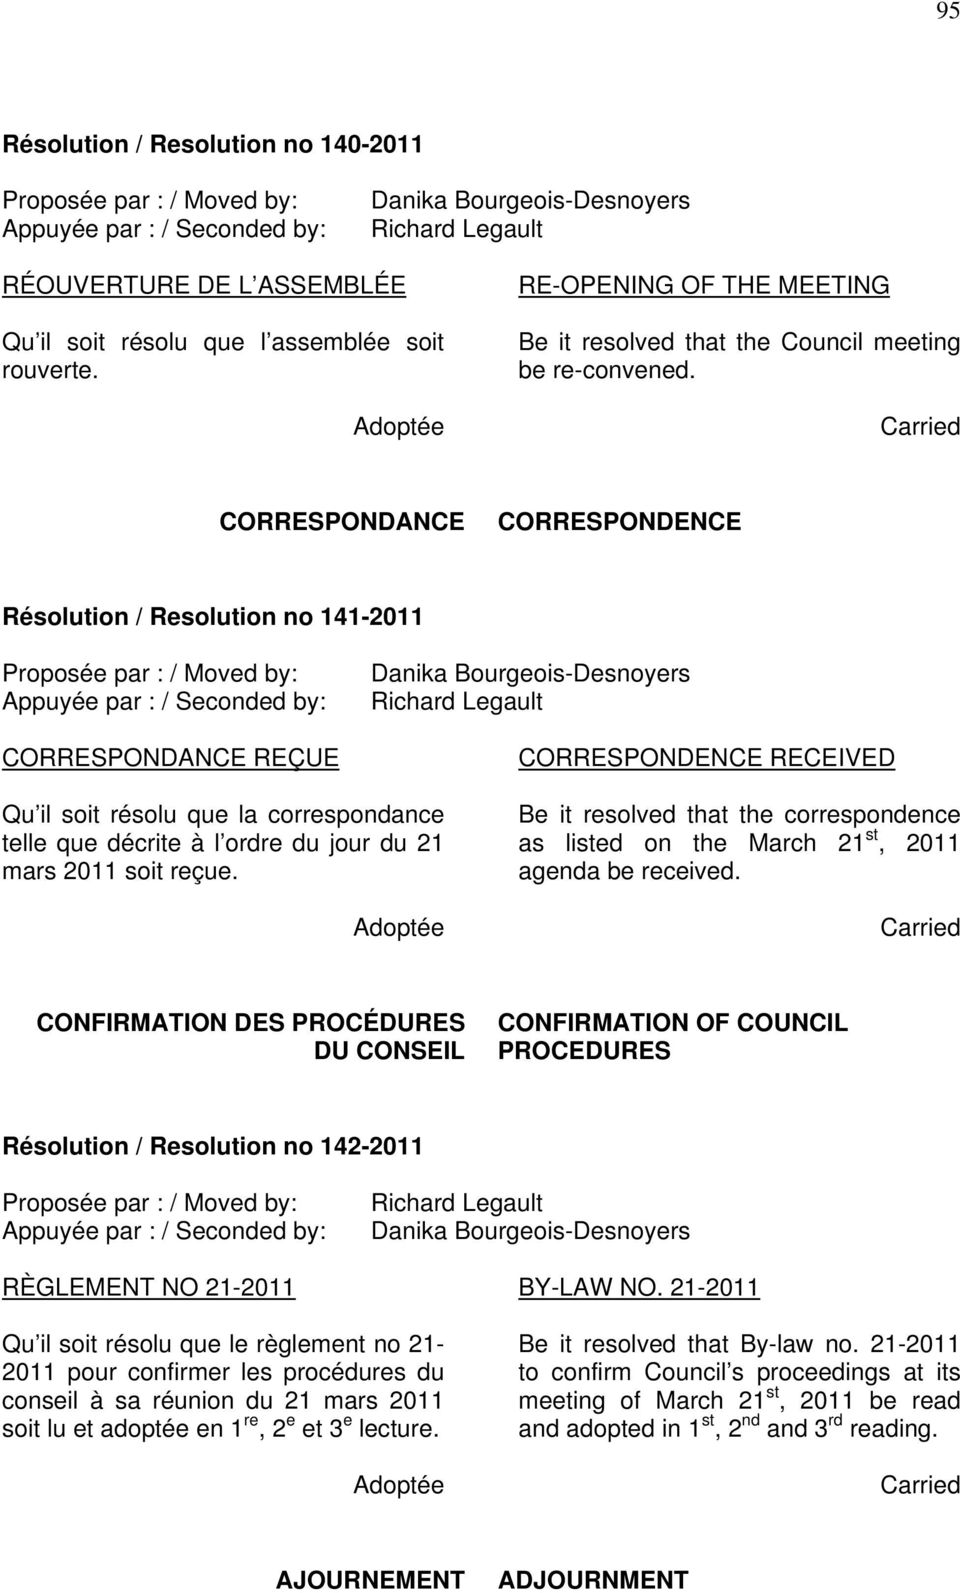 2011 soit reçue. Be it resolved that the correspondence as listed on the March 21 st, 2011 agenda be received.